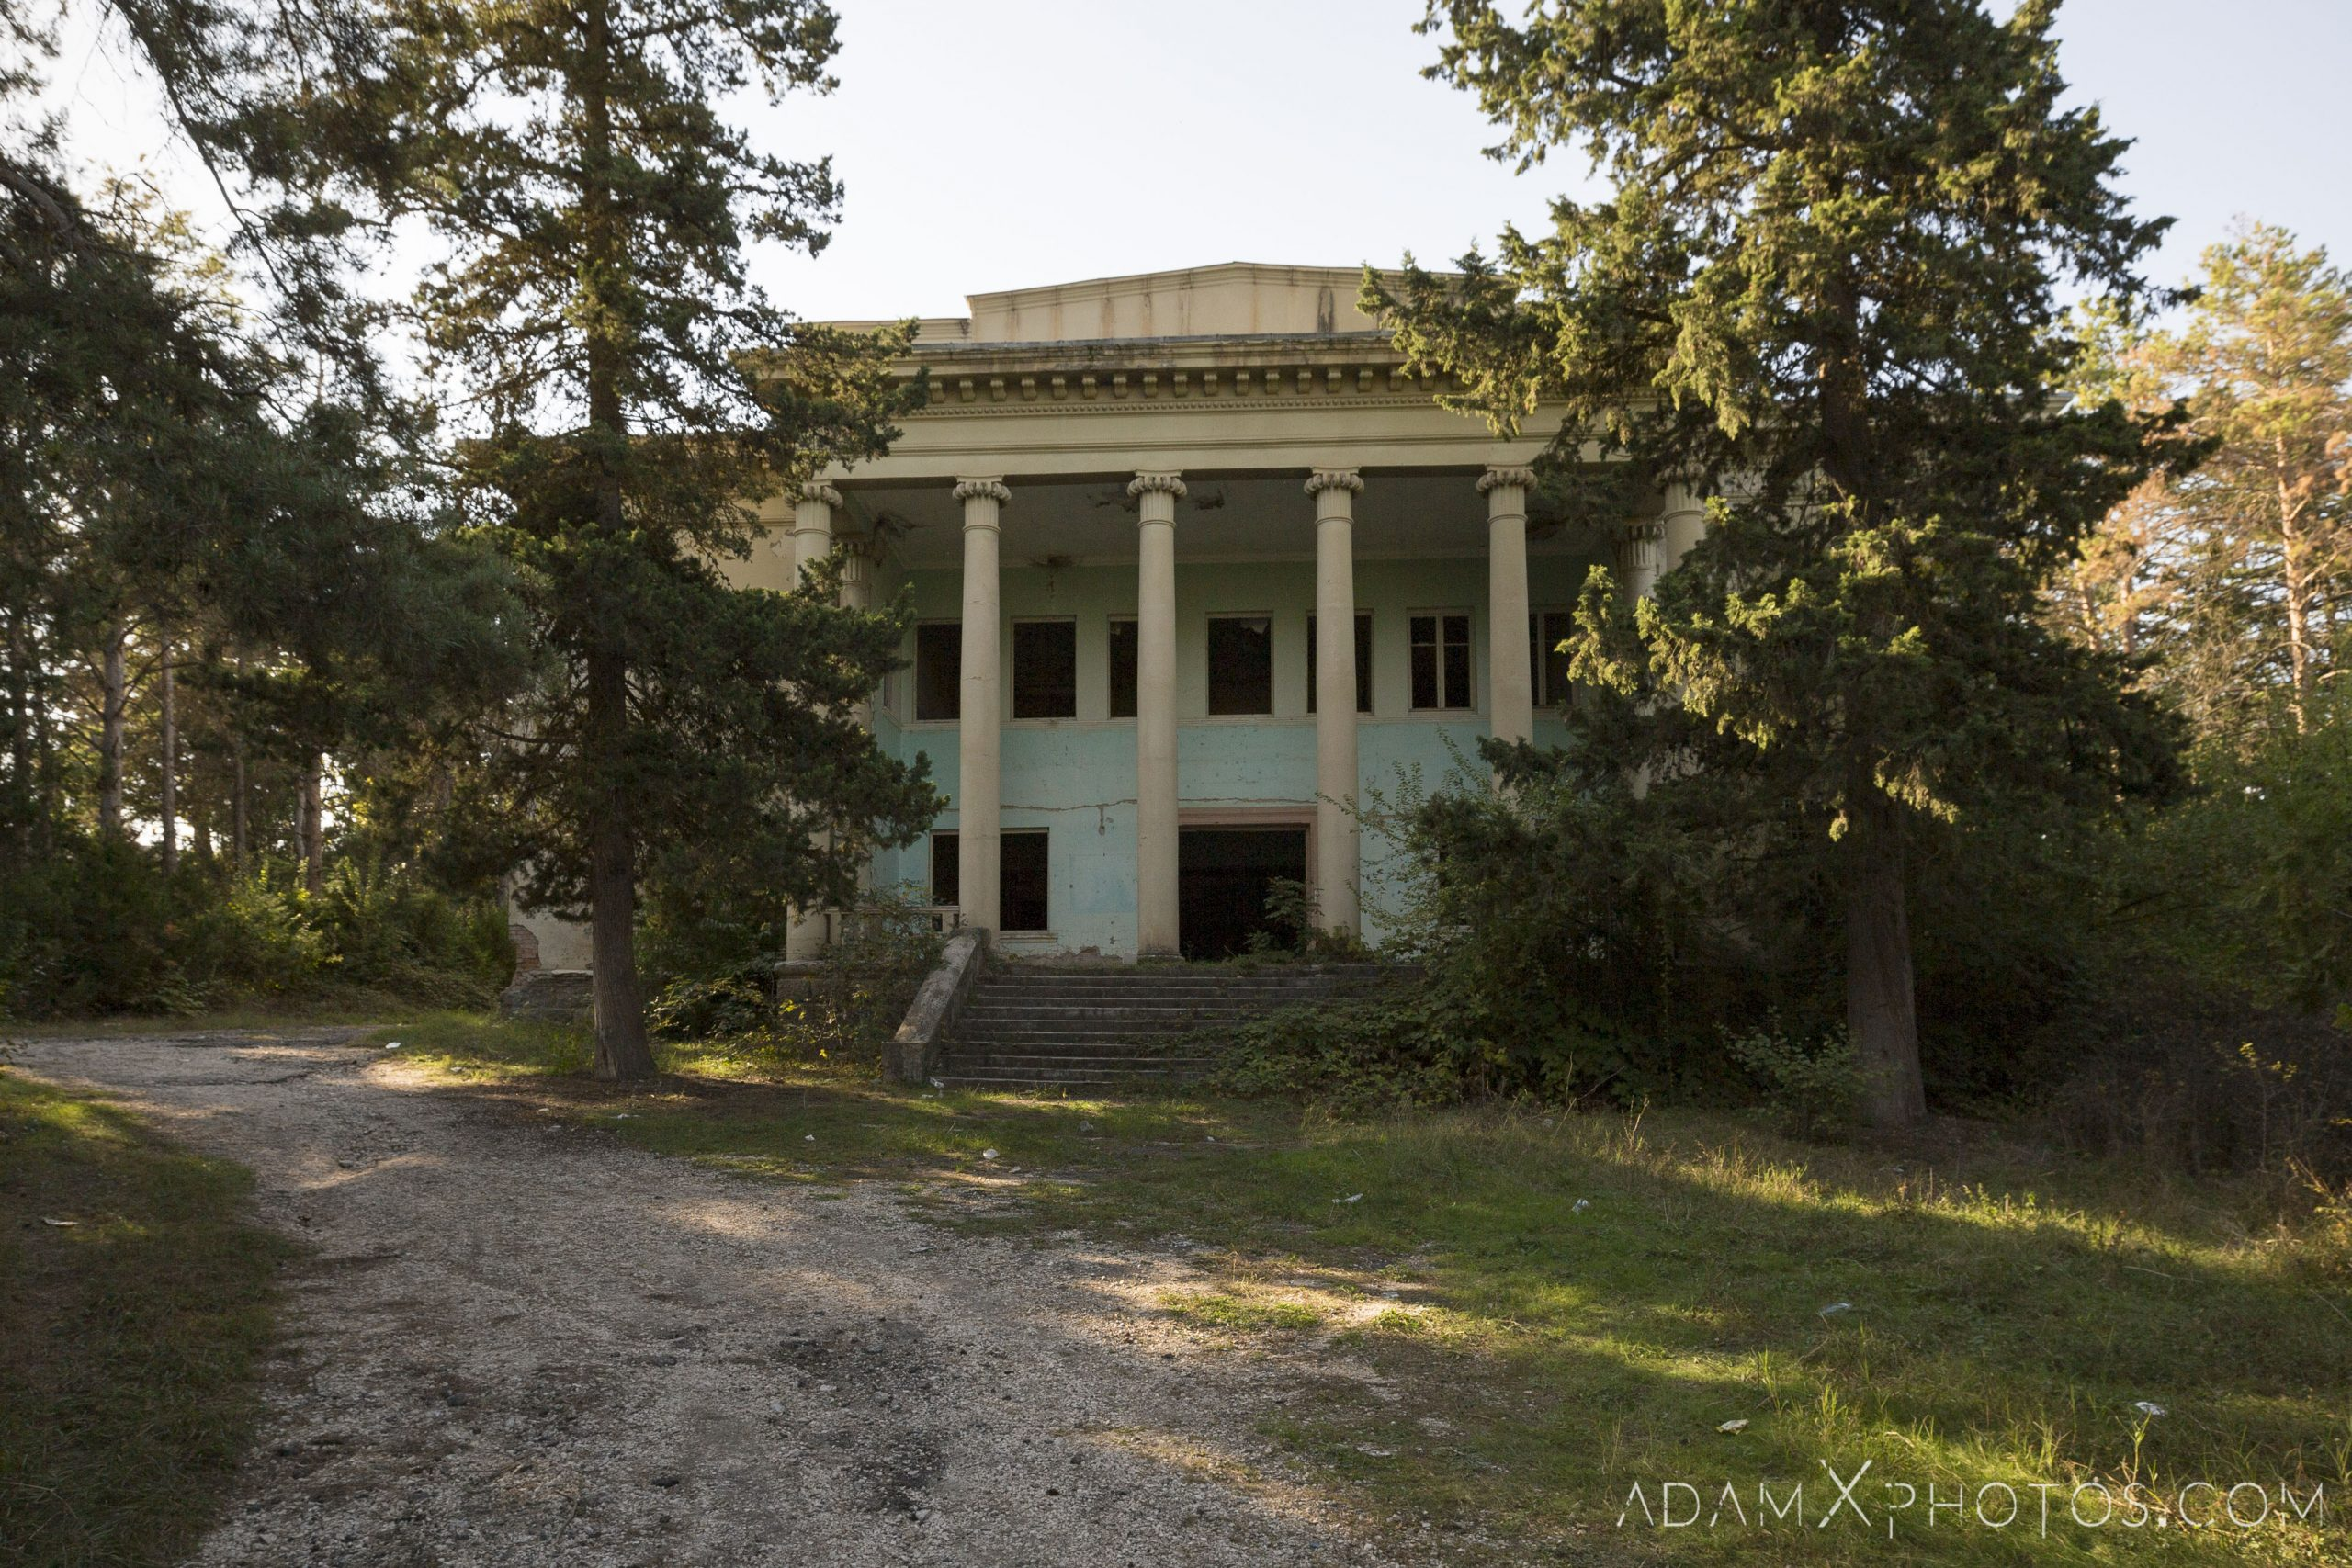 External exterior front outside House of Culture Palace Pink rural Soviet era Georgia Adam X AdamXPhotos Urbex Urban Exploration 2018 Abandoned Access History decay ruins lost forgotten derelict location creepy haunting eerie security